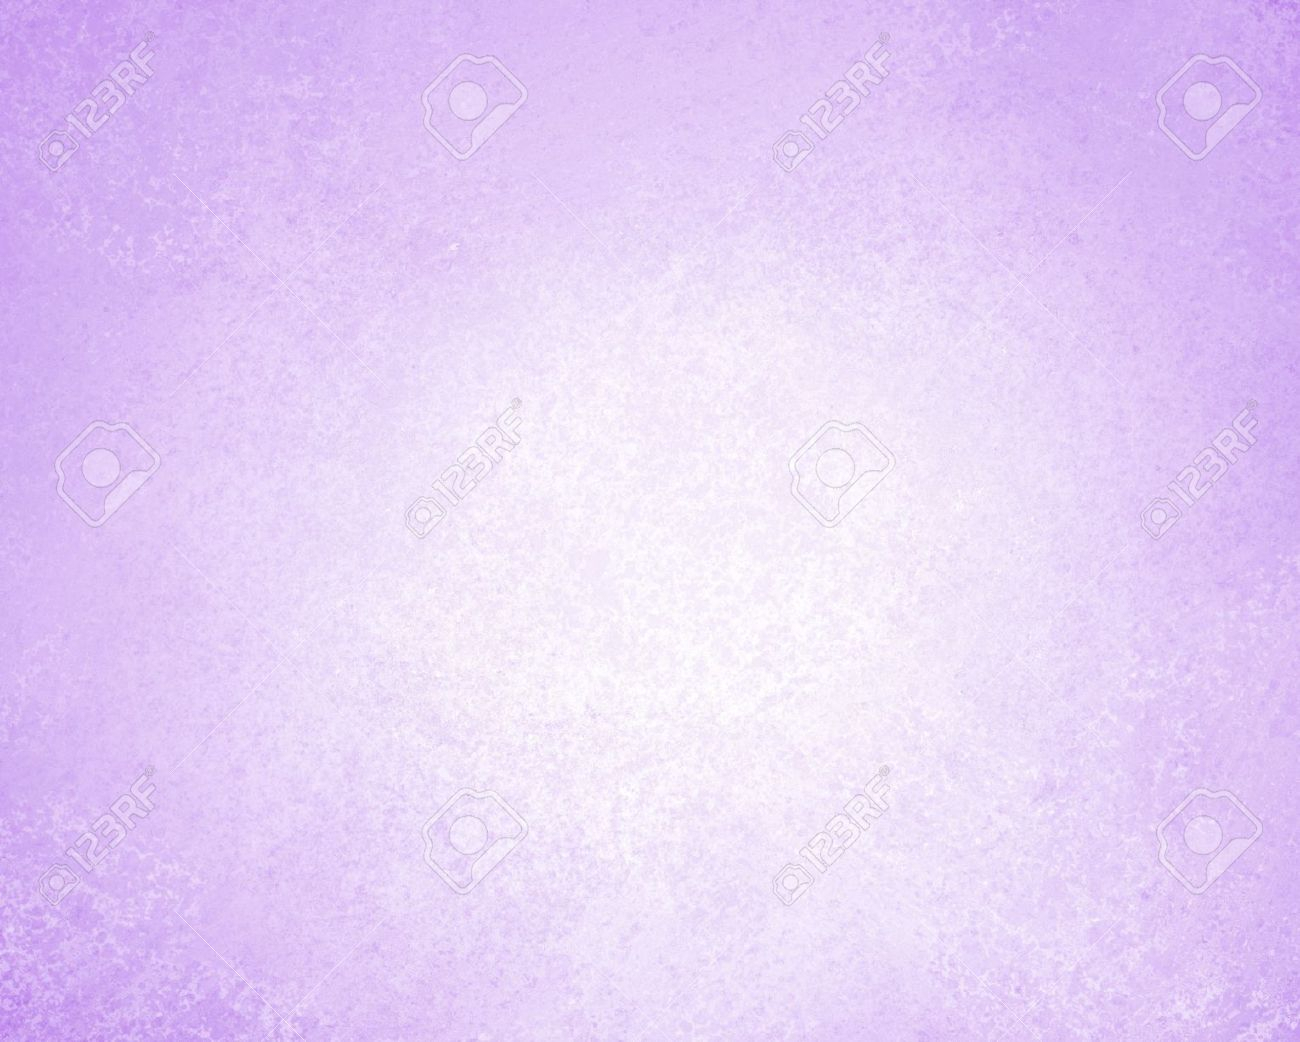 light purple background or white background with vintage grunge